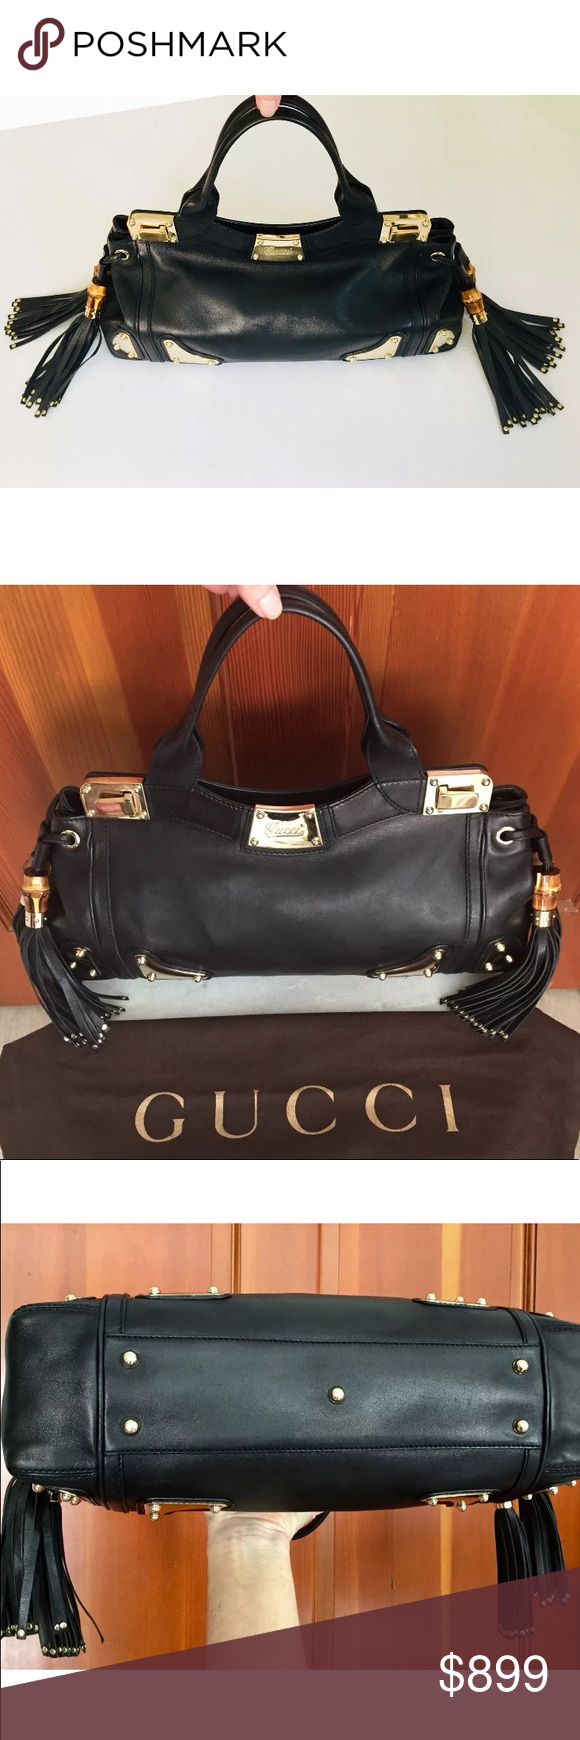 fbd16967c2fd Black Leather · Signs · Gucci Race Bamboo Tassel Handbag This is a  beautiful and Rare Gucci Race Bamboo Tassel Handbag